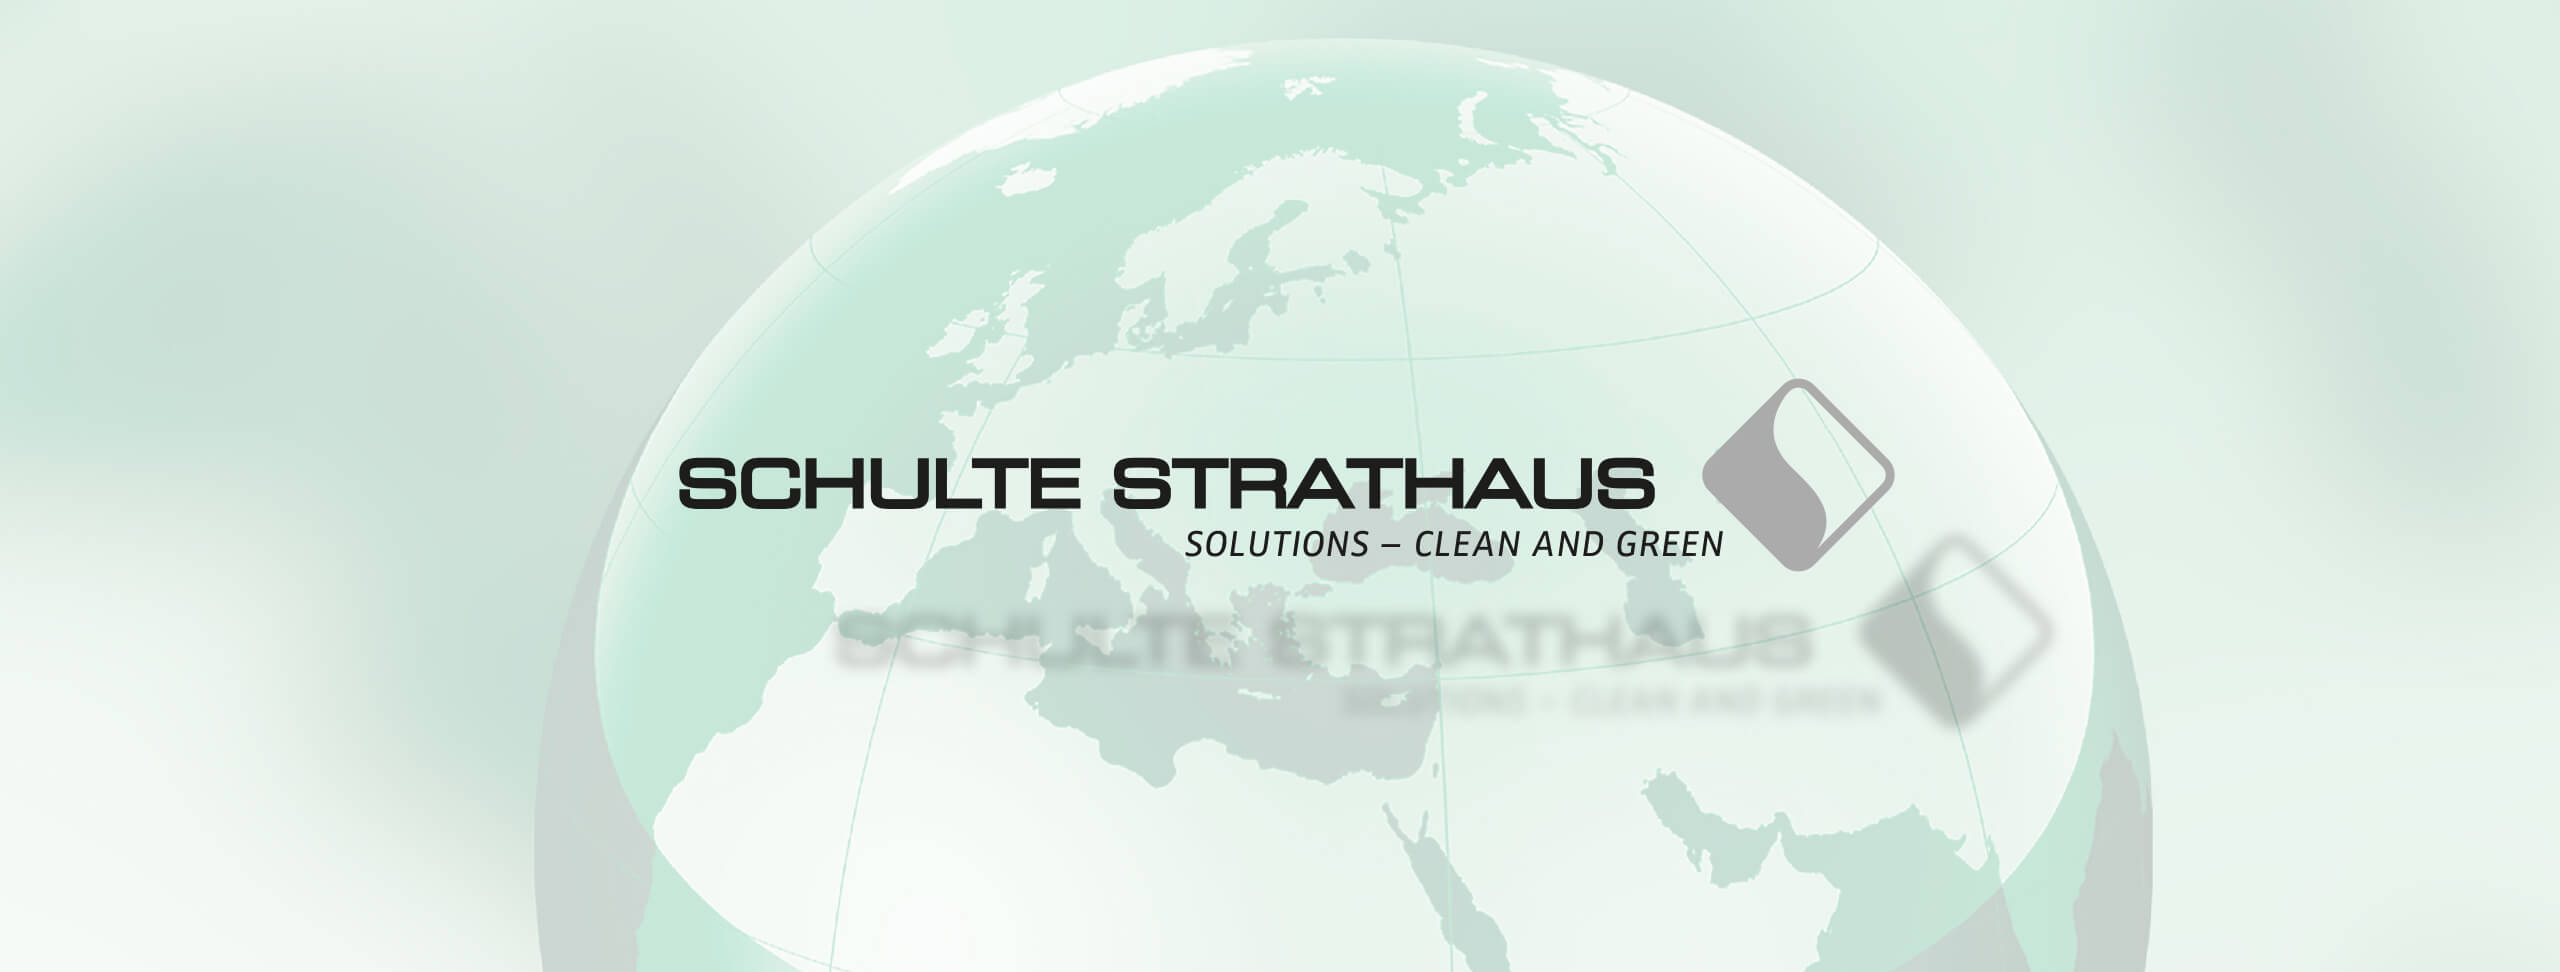 SCHULTE STRATHAUS - Solutions - Clean and green